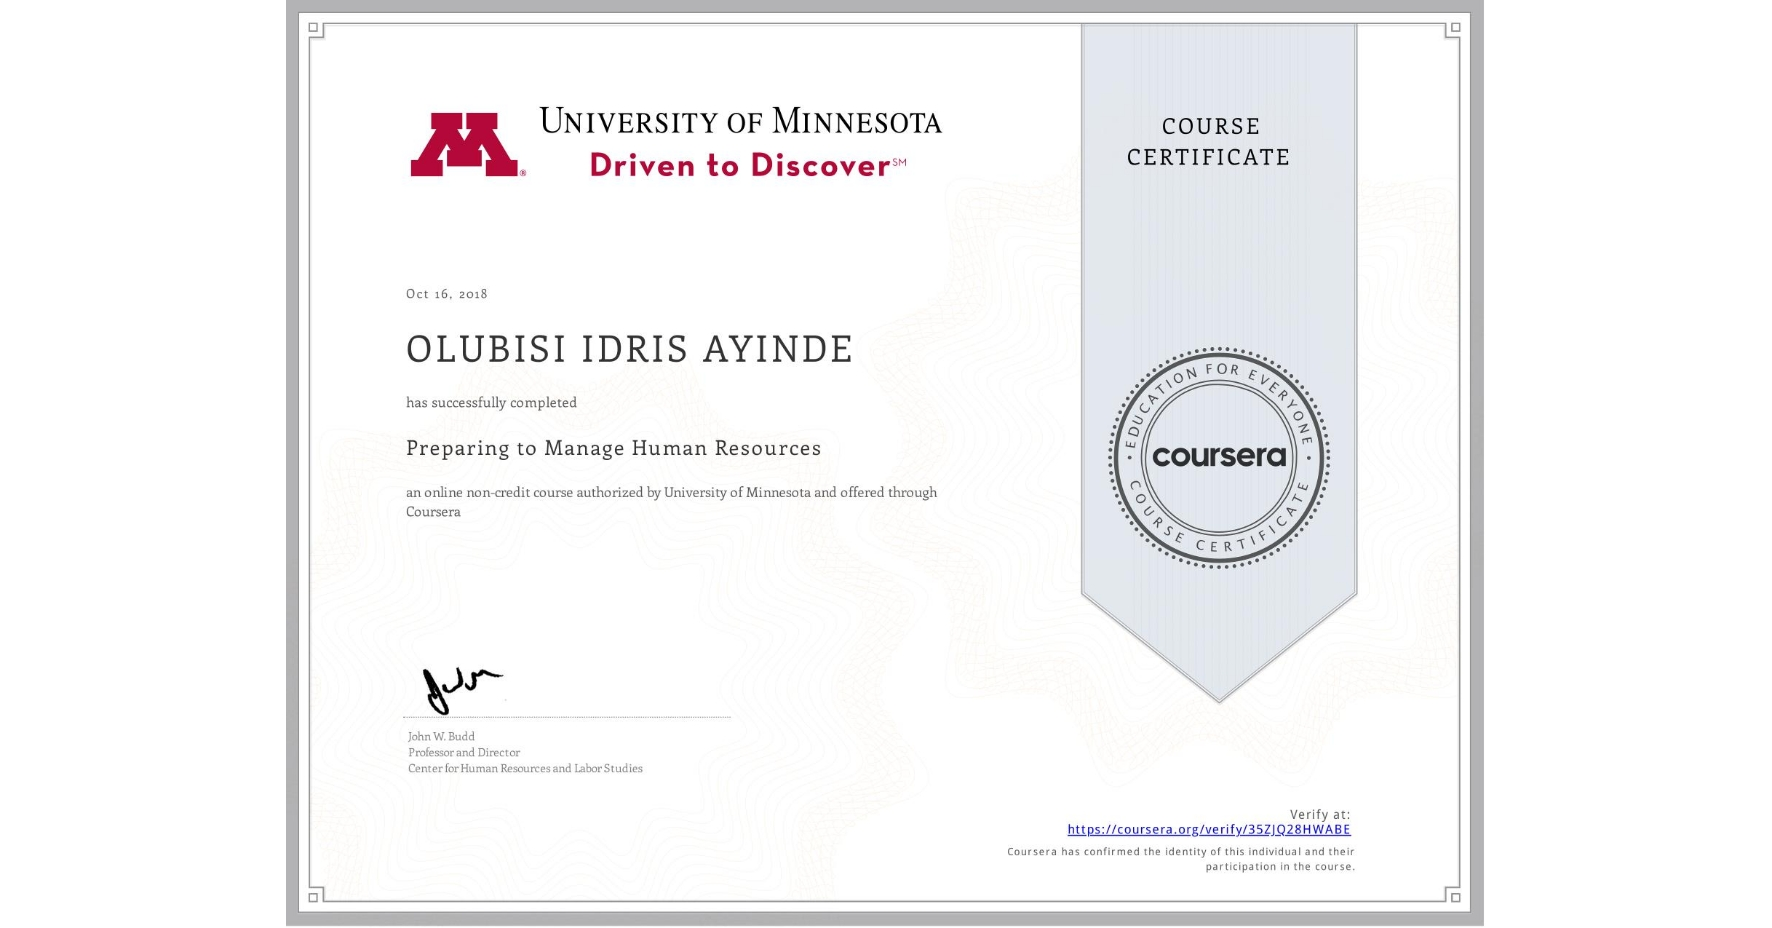 View certificate for OLUBISI IDRIS AYINDE, Preparing to Manage Human Resources, an online non-credit course authorized by University of Minnesota and offered through Coursera